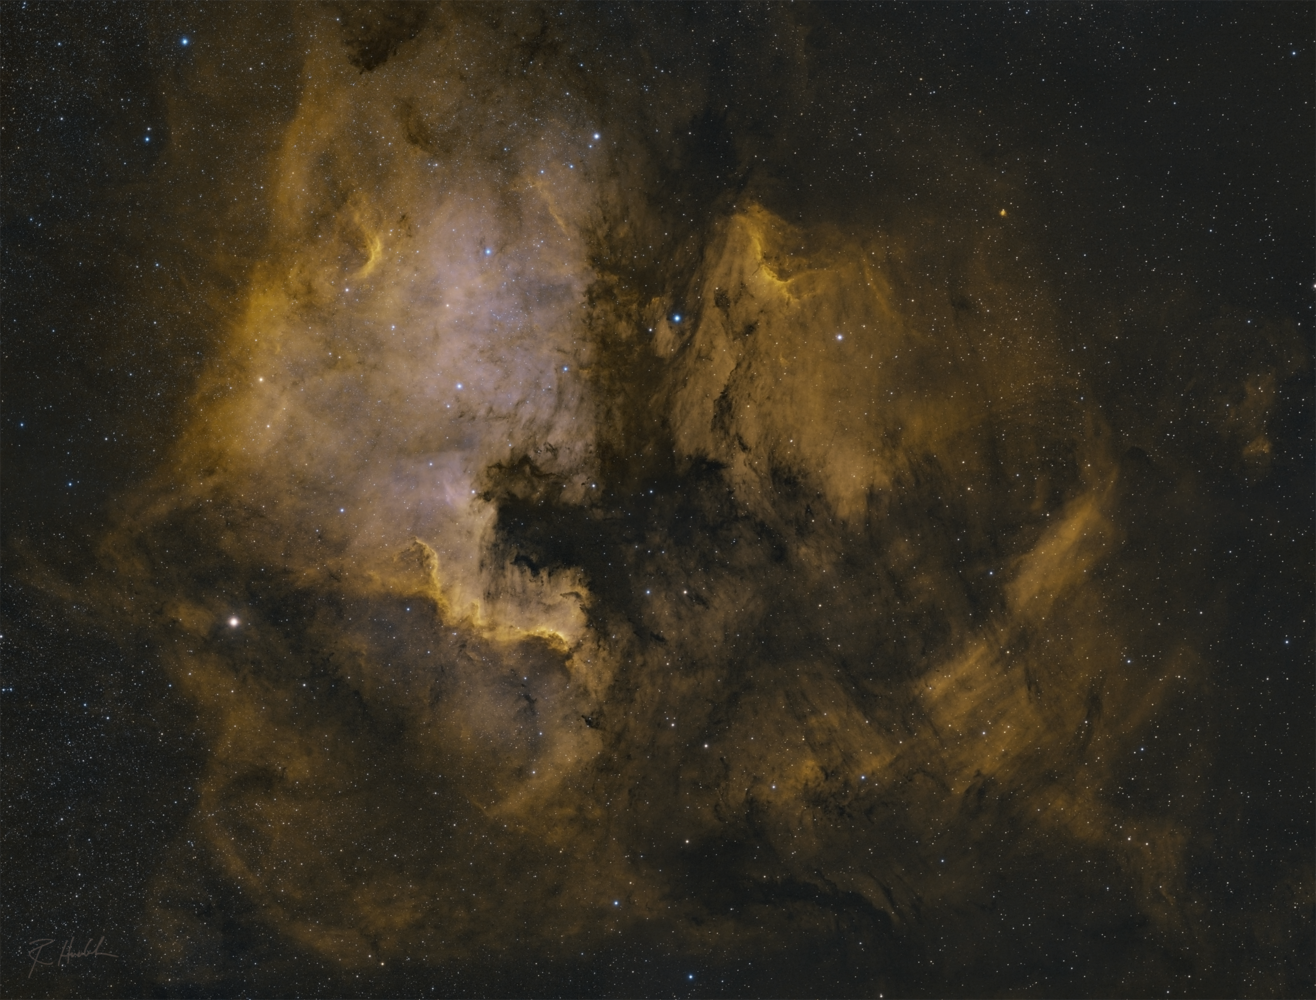 4 panel mosaic of the North American and Pelican Nebulas, and the Great Wall in Cygnus by Robert Huerbsch